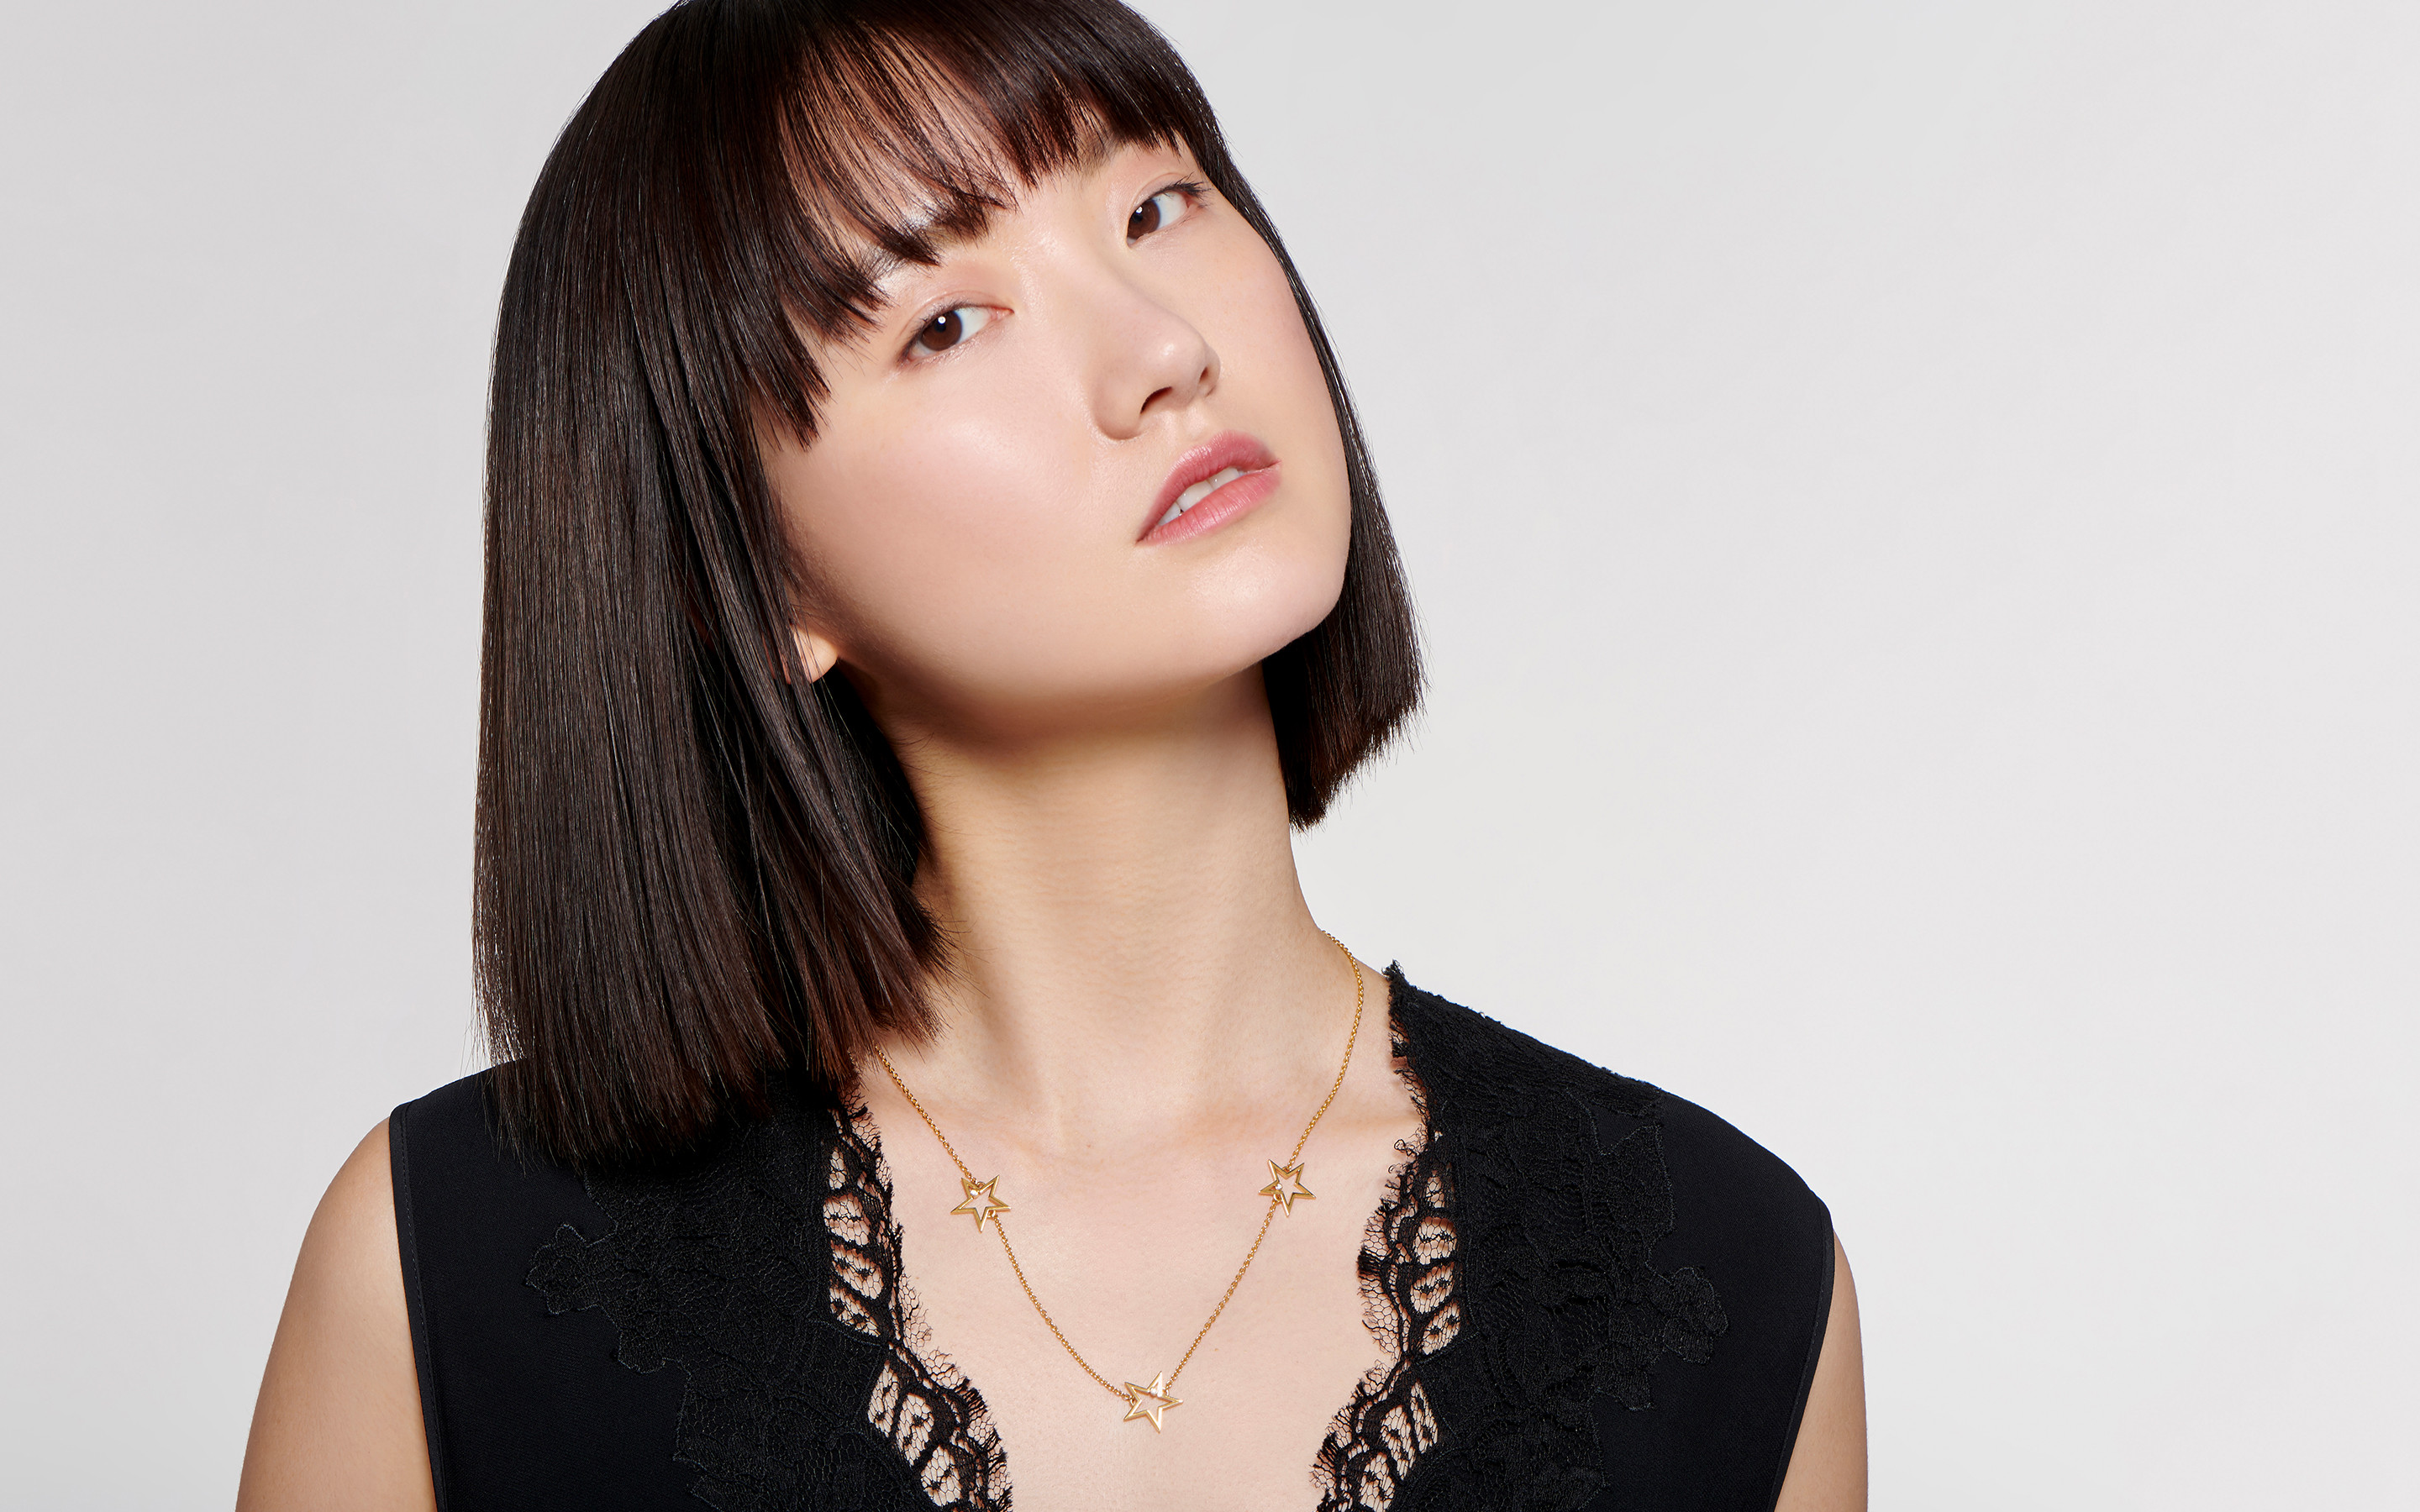 Alluring Asian models dons a 22 karat gold necklace embolden by 3 golden stars